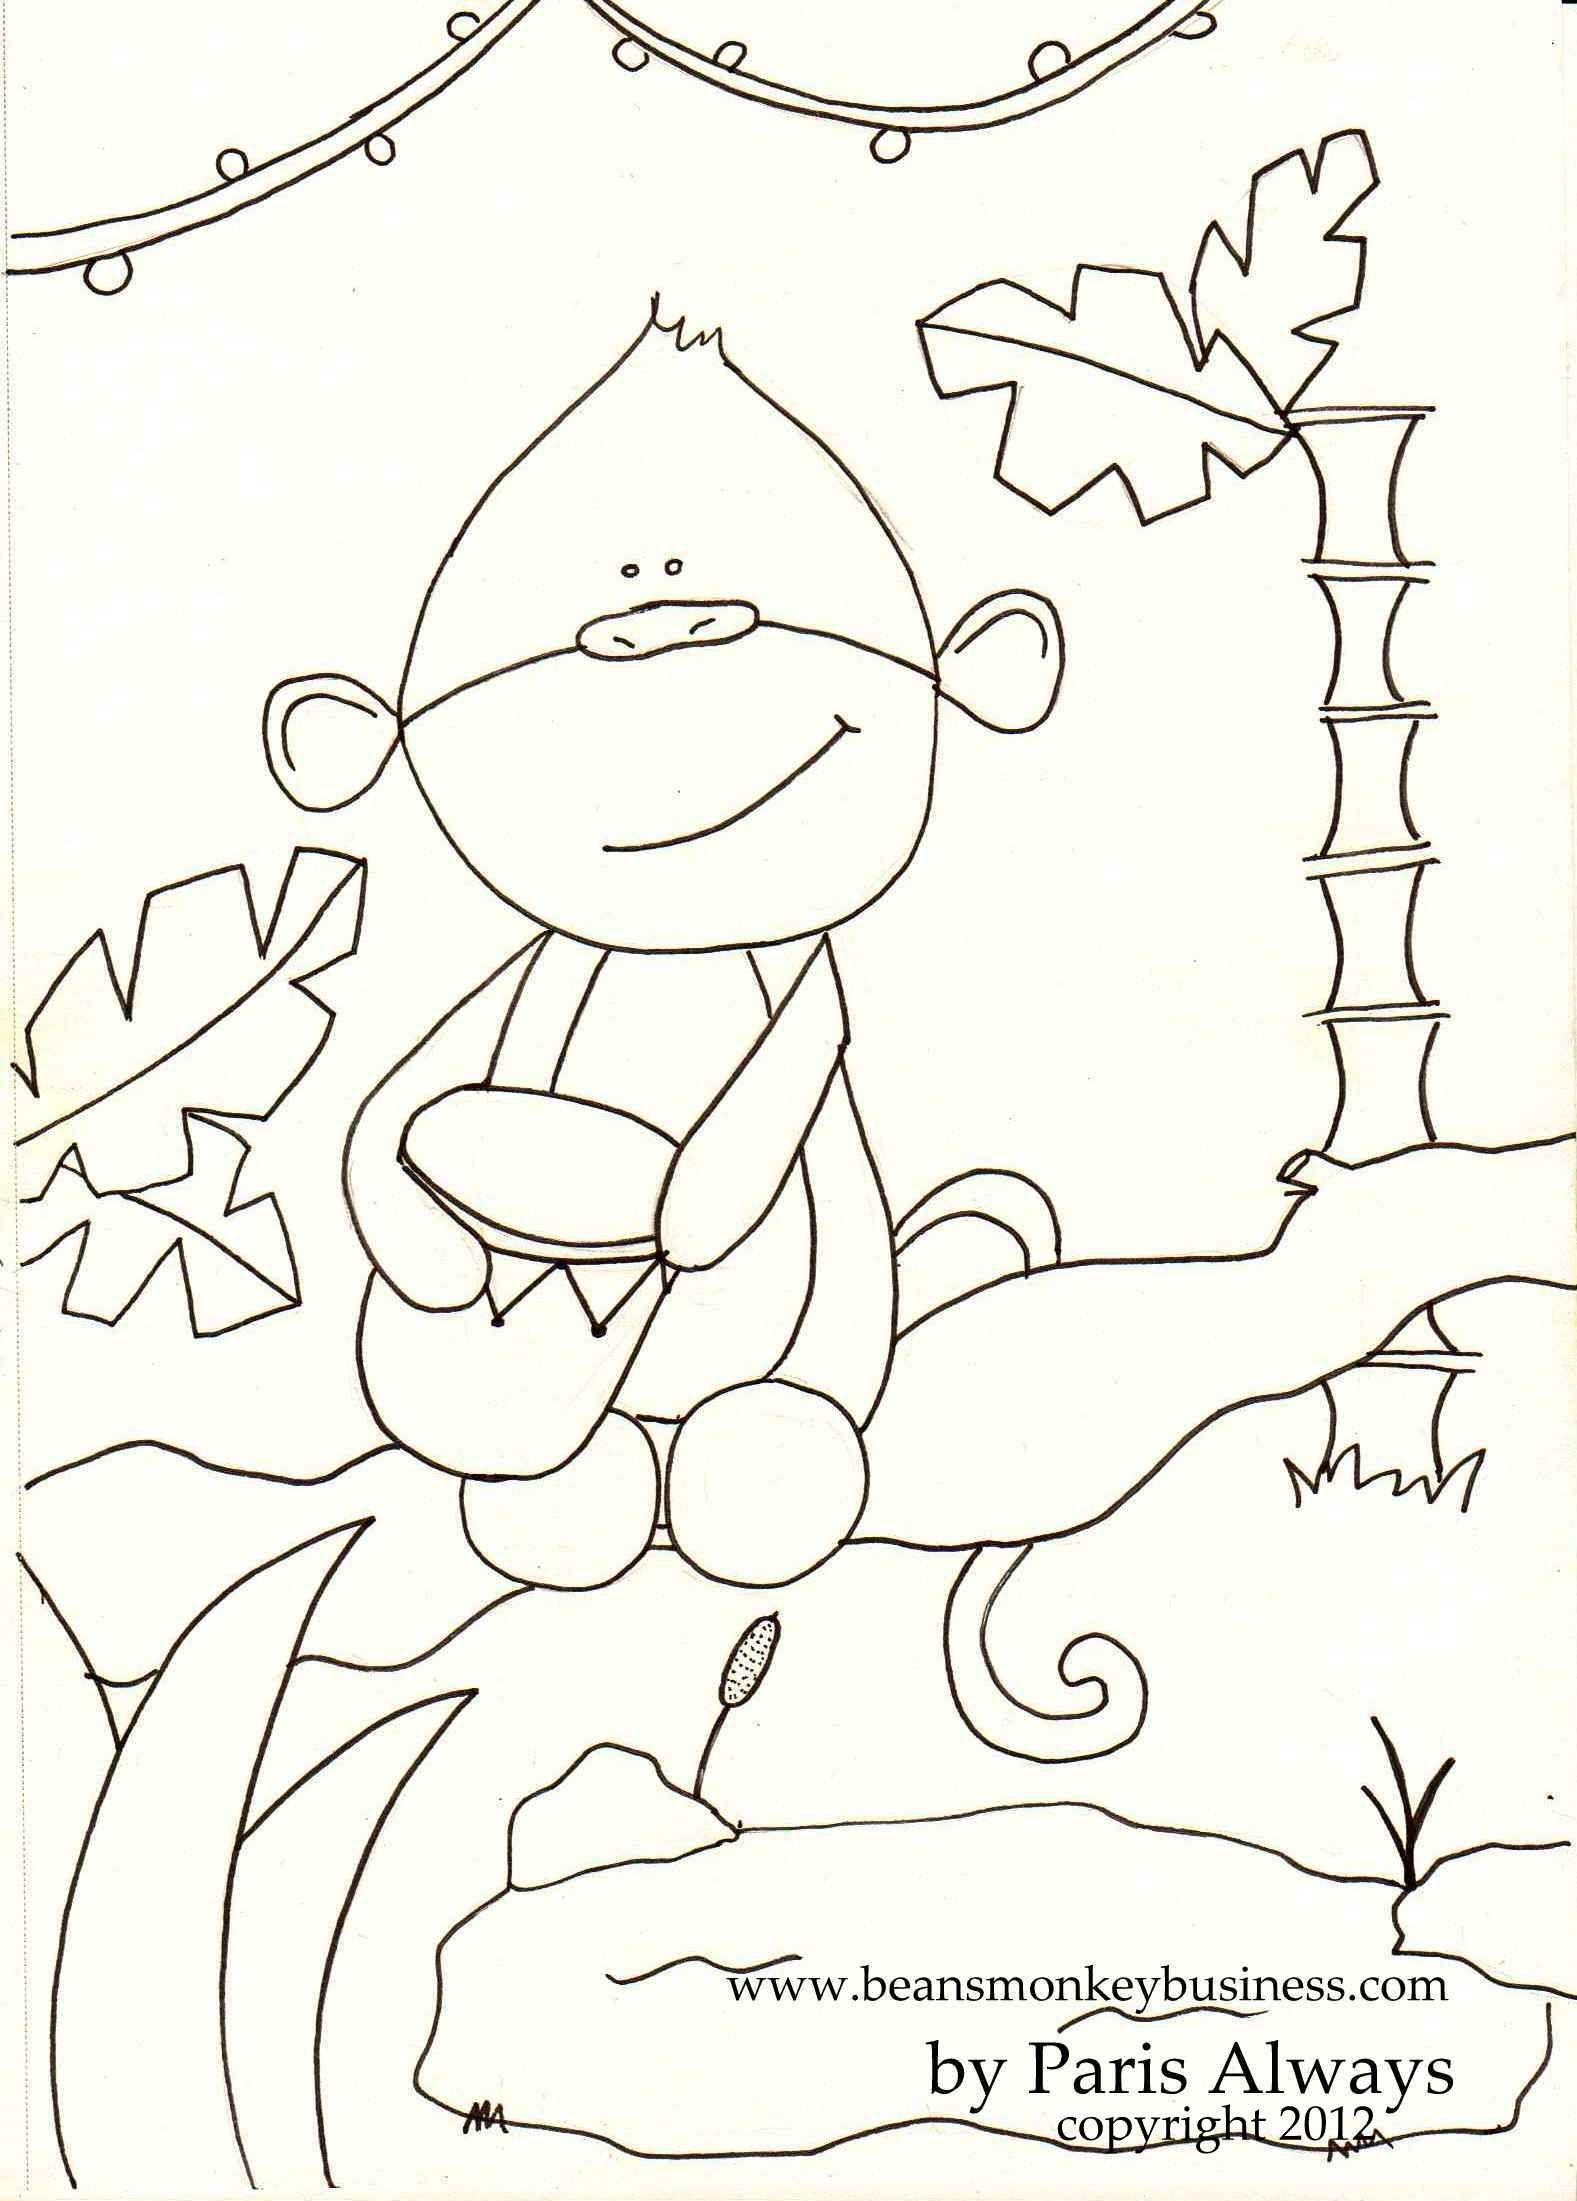 Beans Coloring Pages Download [ 2201 x 1577 Pixel ]